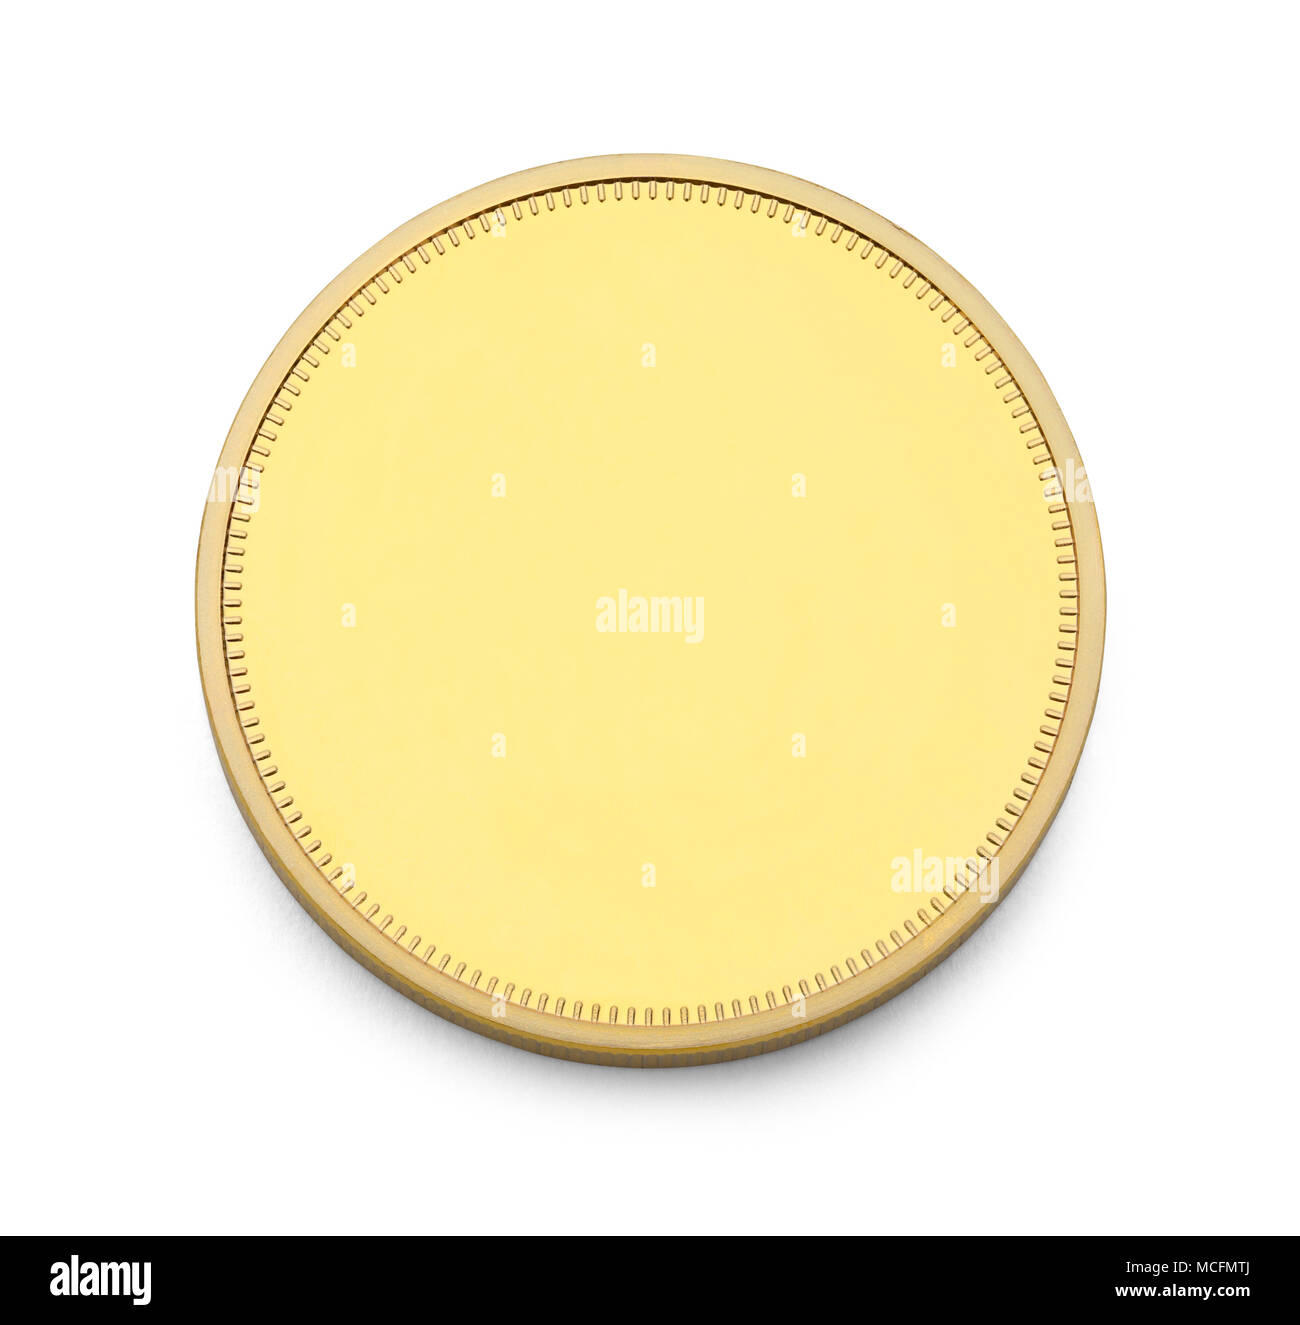 Gold Coin with Copy Space Isolated on White Background. - Stock Image